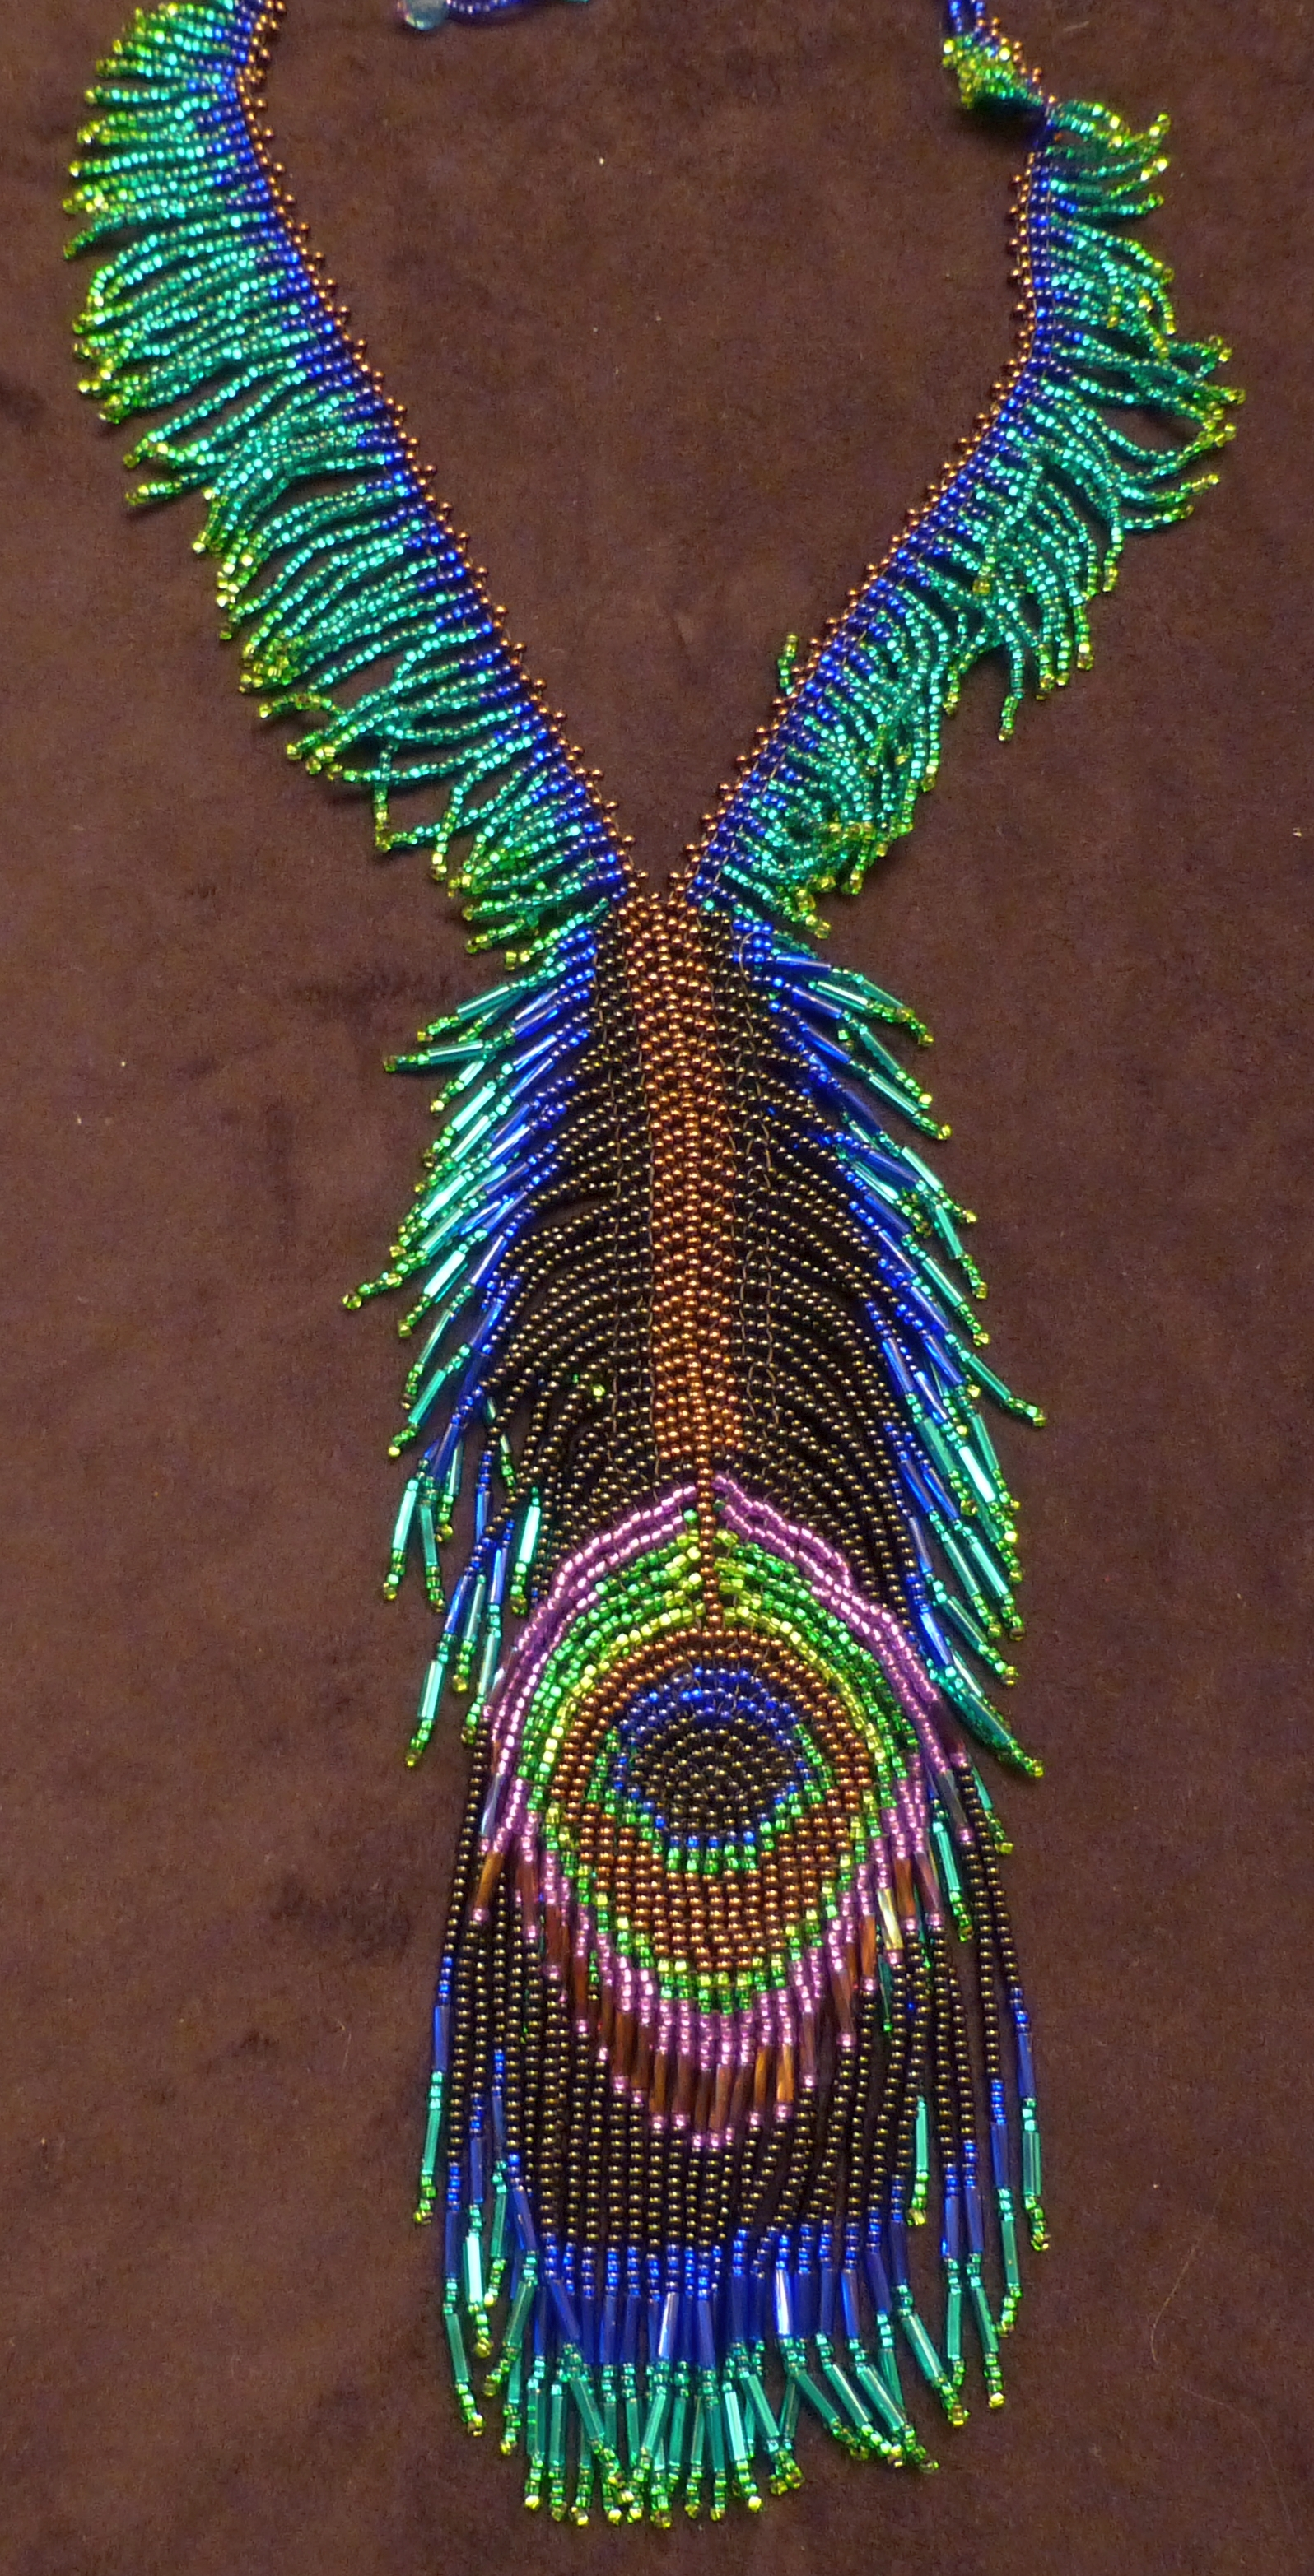 feather necklace chain pearl length peacock pin shipping your choose fast